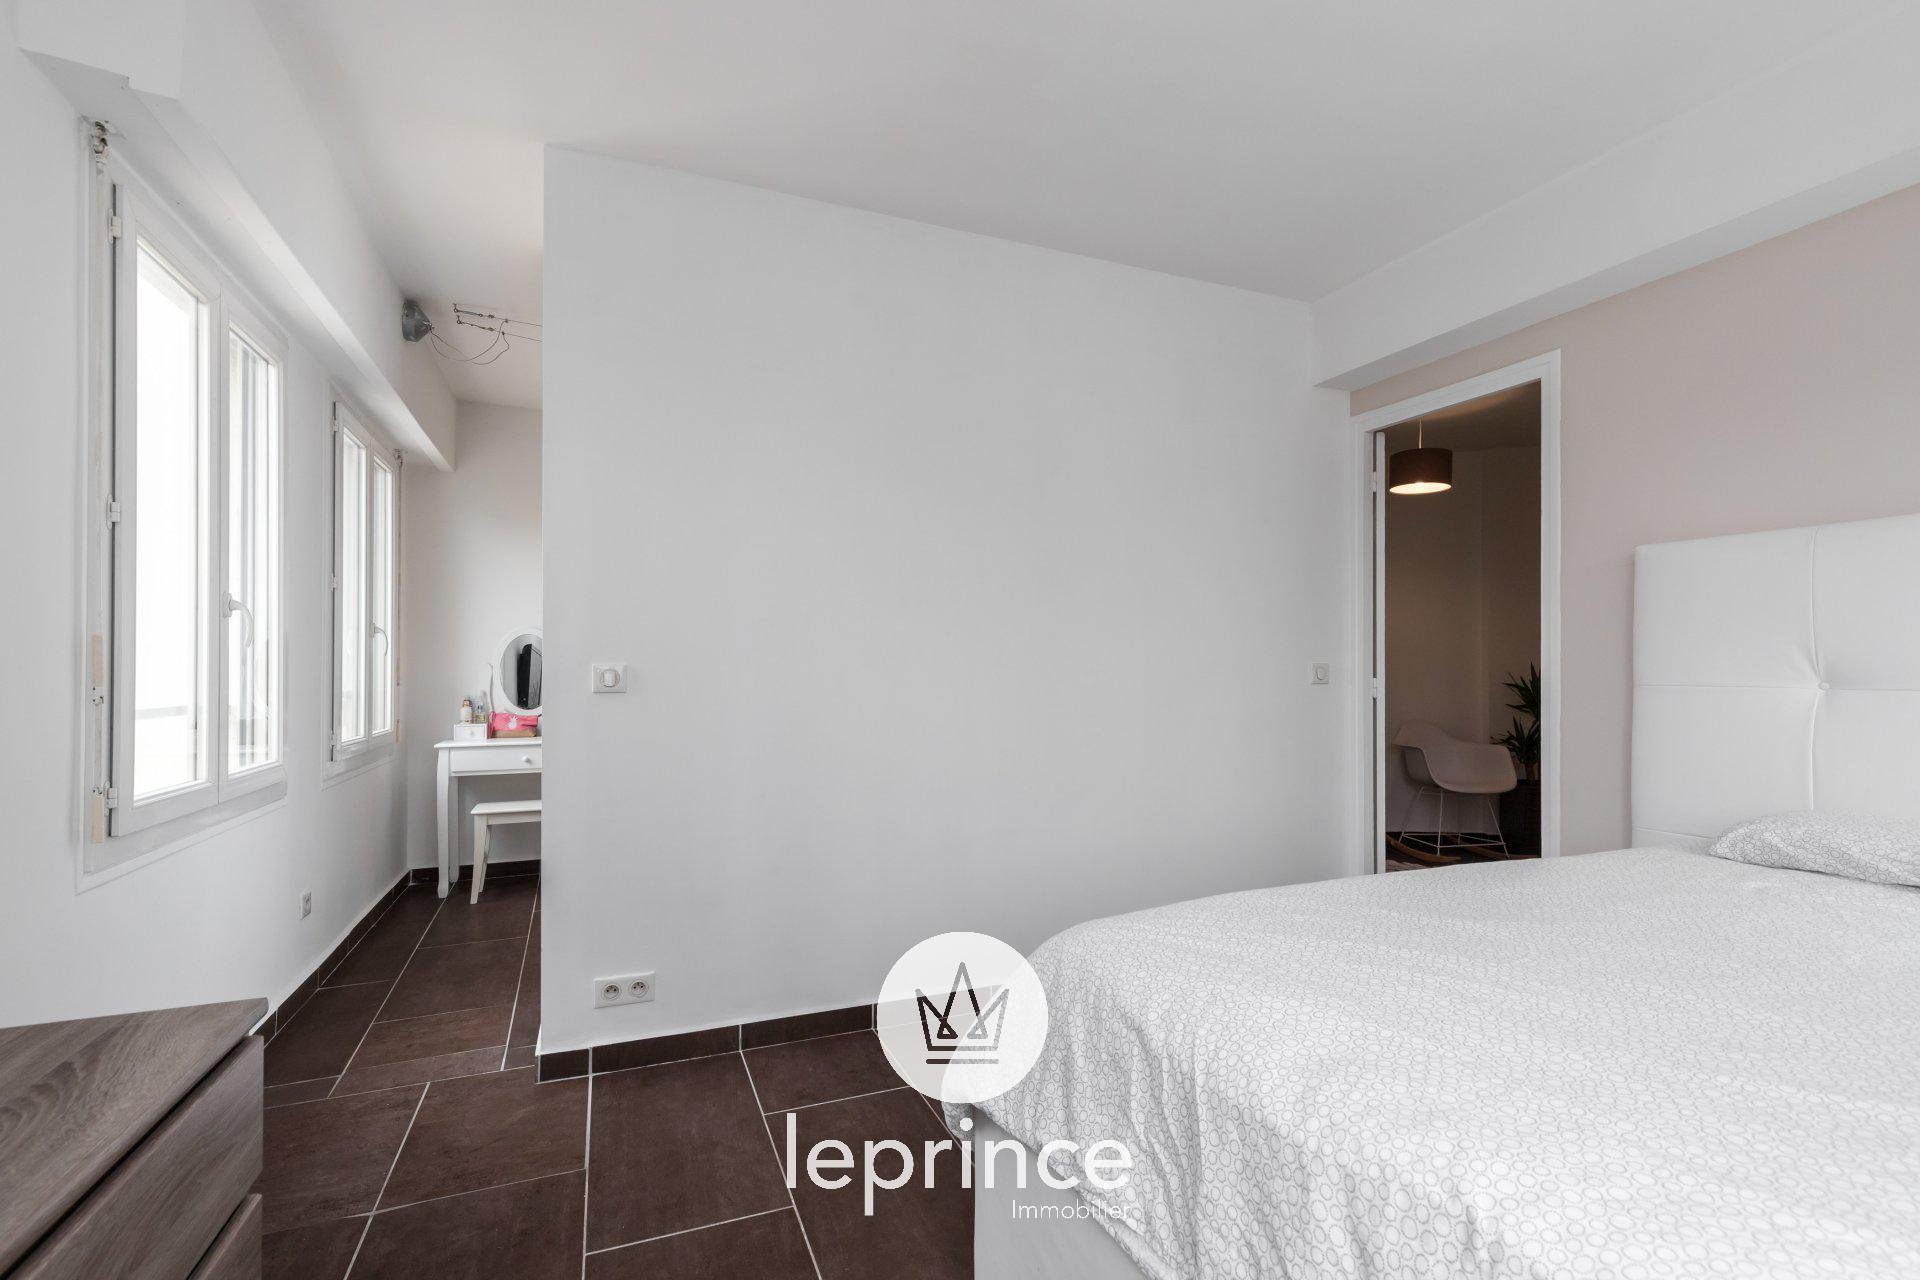 Cannes / Broussailles - 2 rooms 72sqm - Box